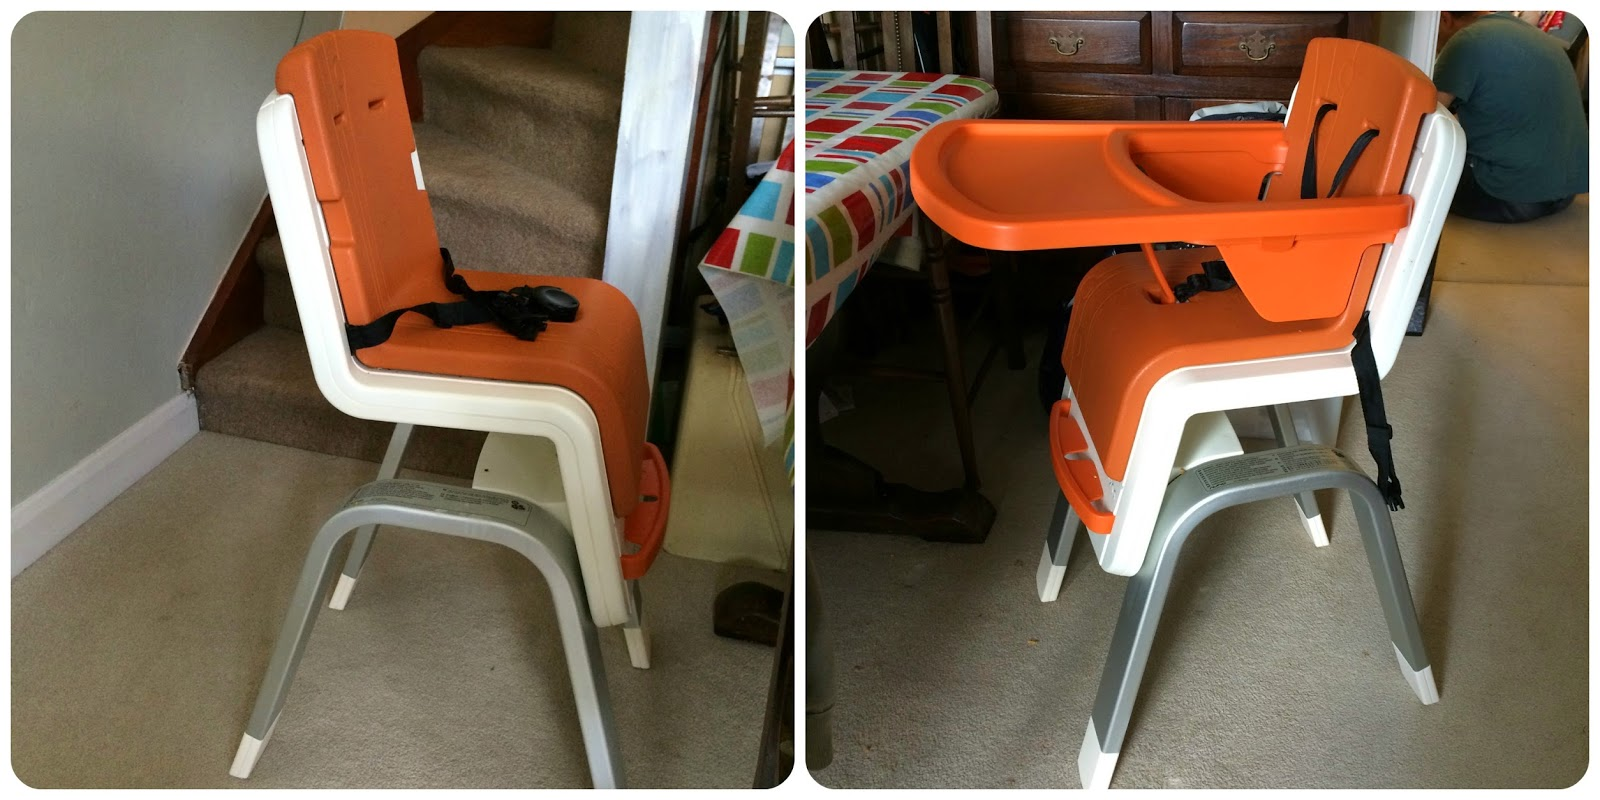 Nuna Zaaz High Chair Celestial Mum Nuna Zaaz Highchair A Review